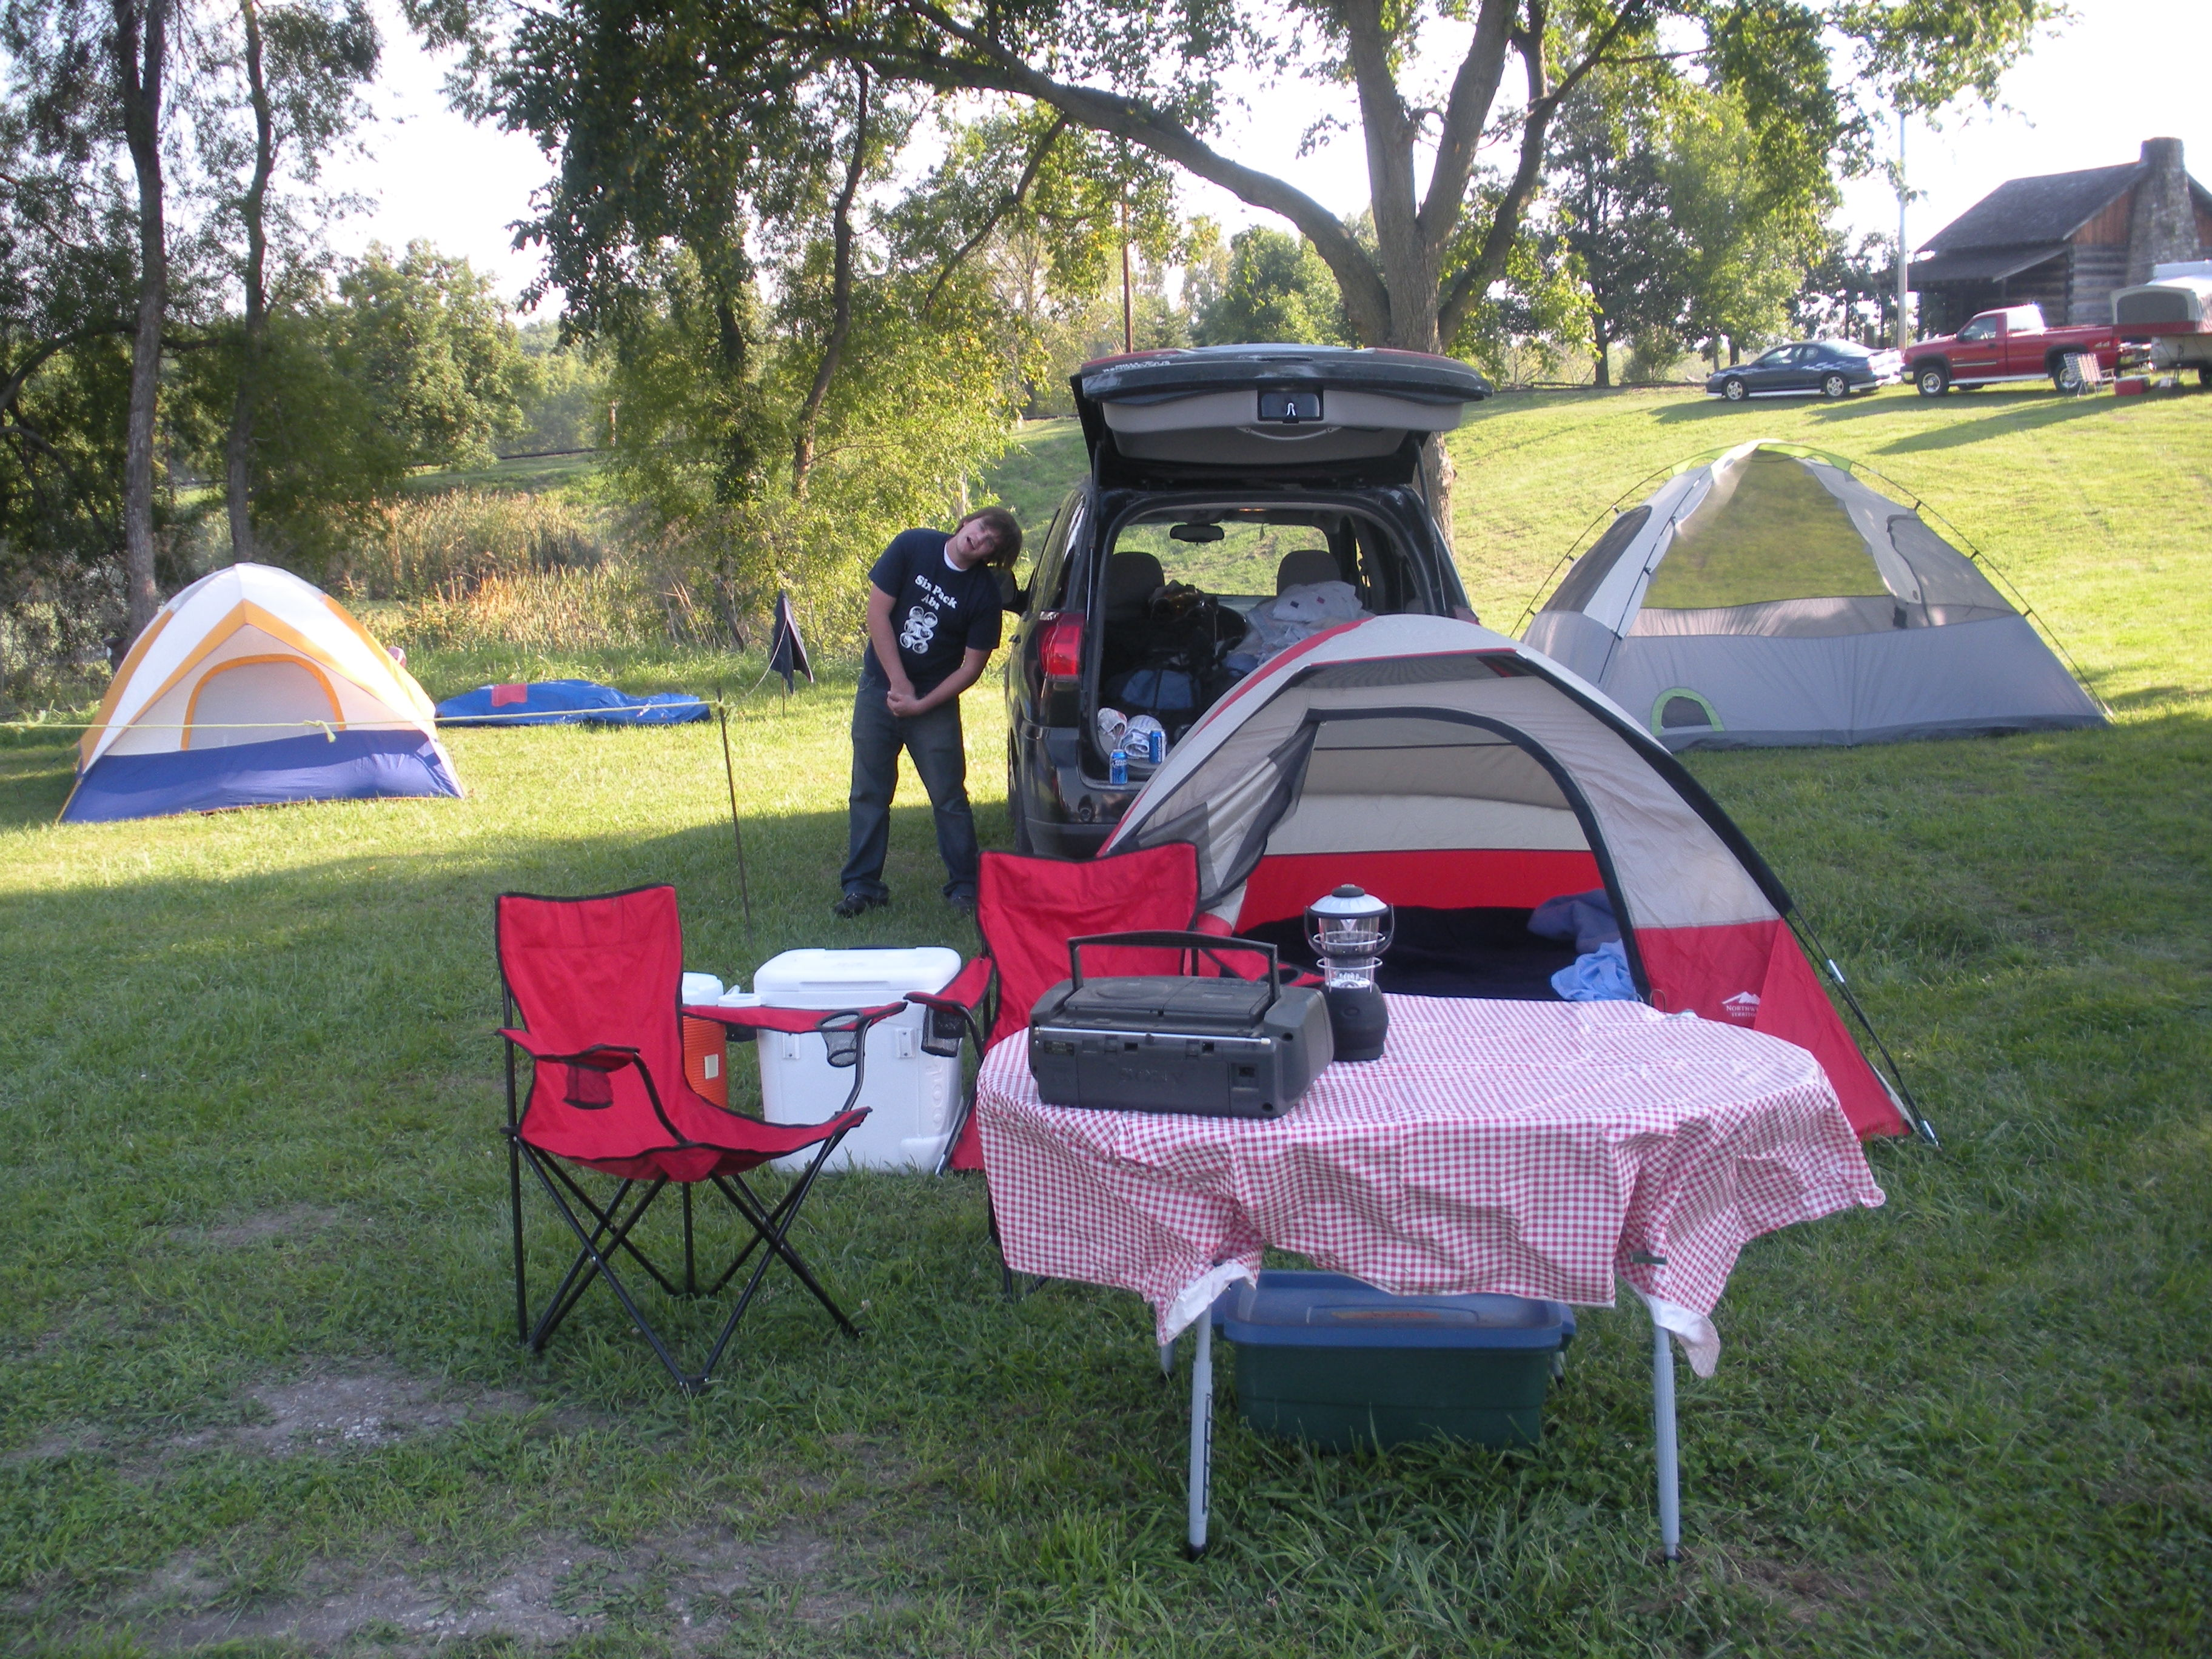 Our little campsite.  See the log cabin in the background?